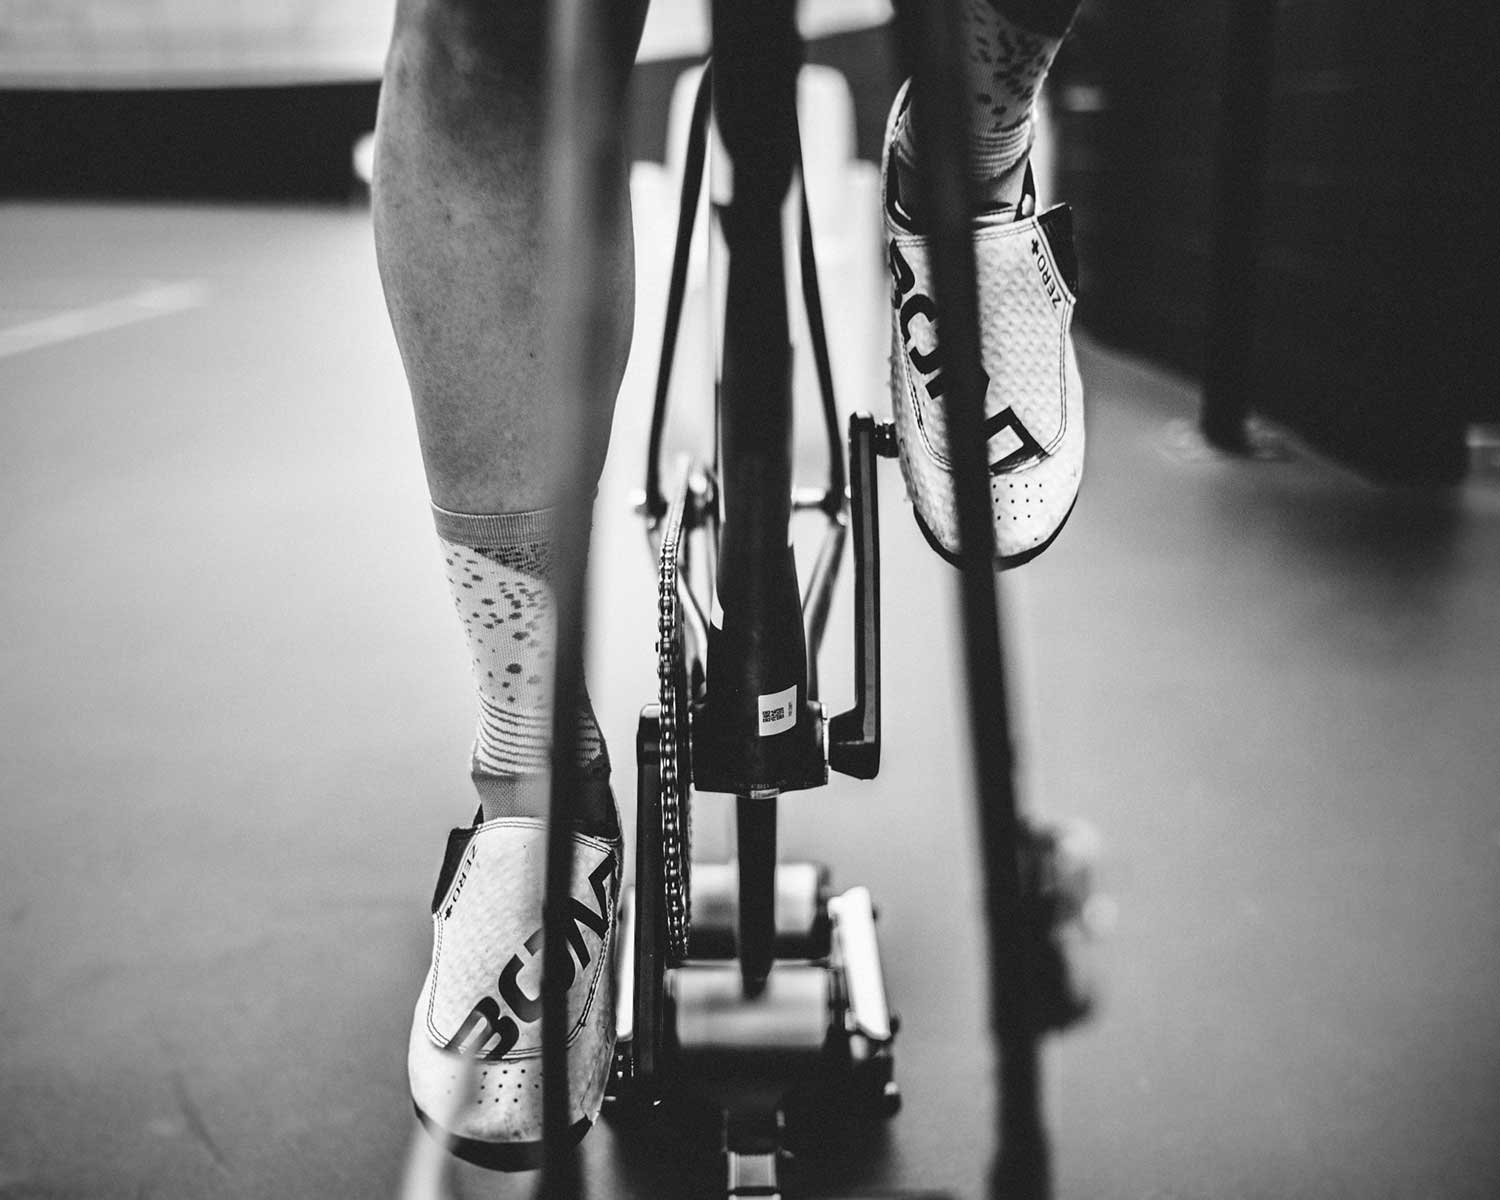 Front view image of cyclist's feet on static bike when training at velodrome